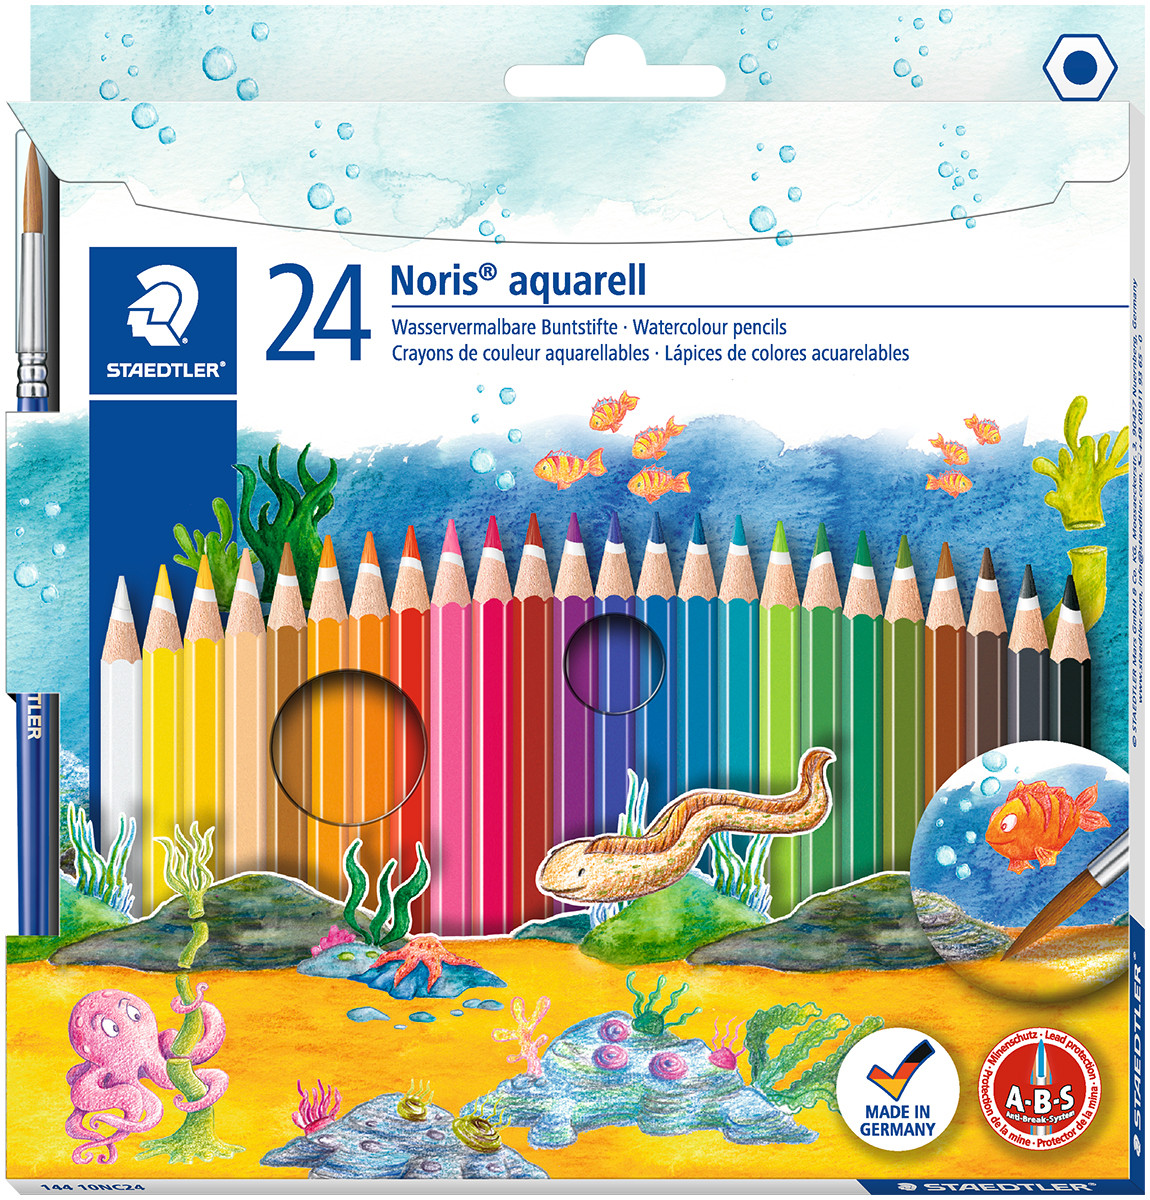 Staedtler Noris Club Aquarell Watercolour Pencils with Paint Brush (Pack of 24)